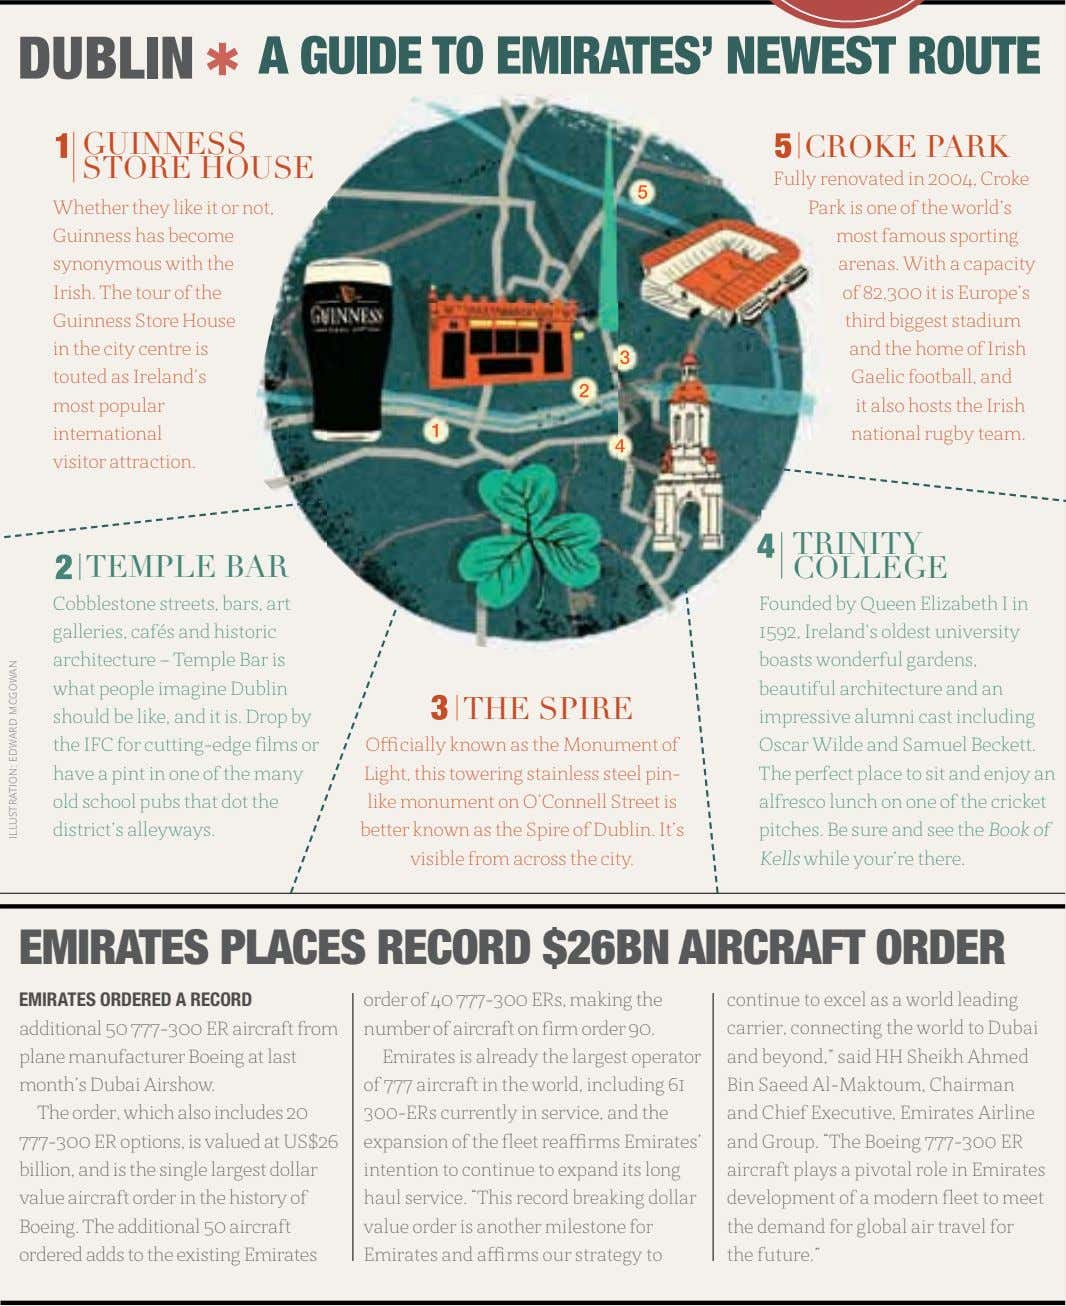 DUBLIN A GUIDE TO EMIRATES' NEWEST ROUTE GUINNESS STORE HOUSE CROKE PARK Whether they like